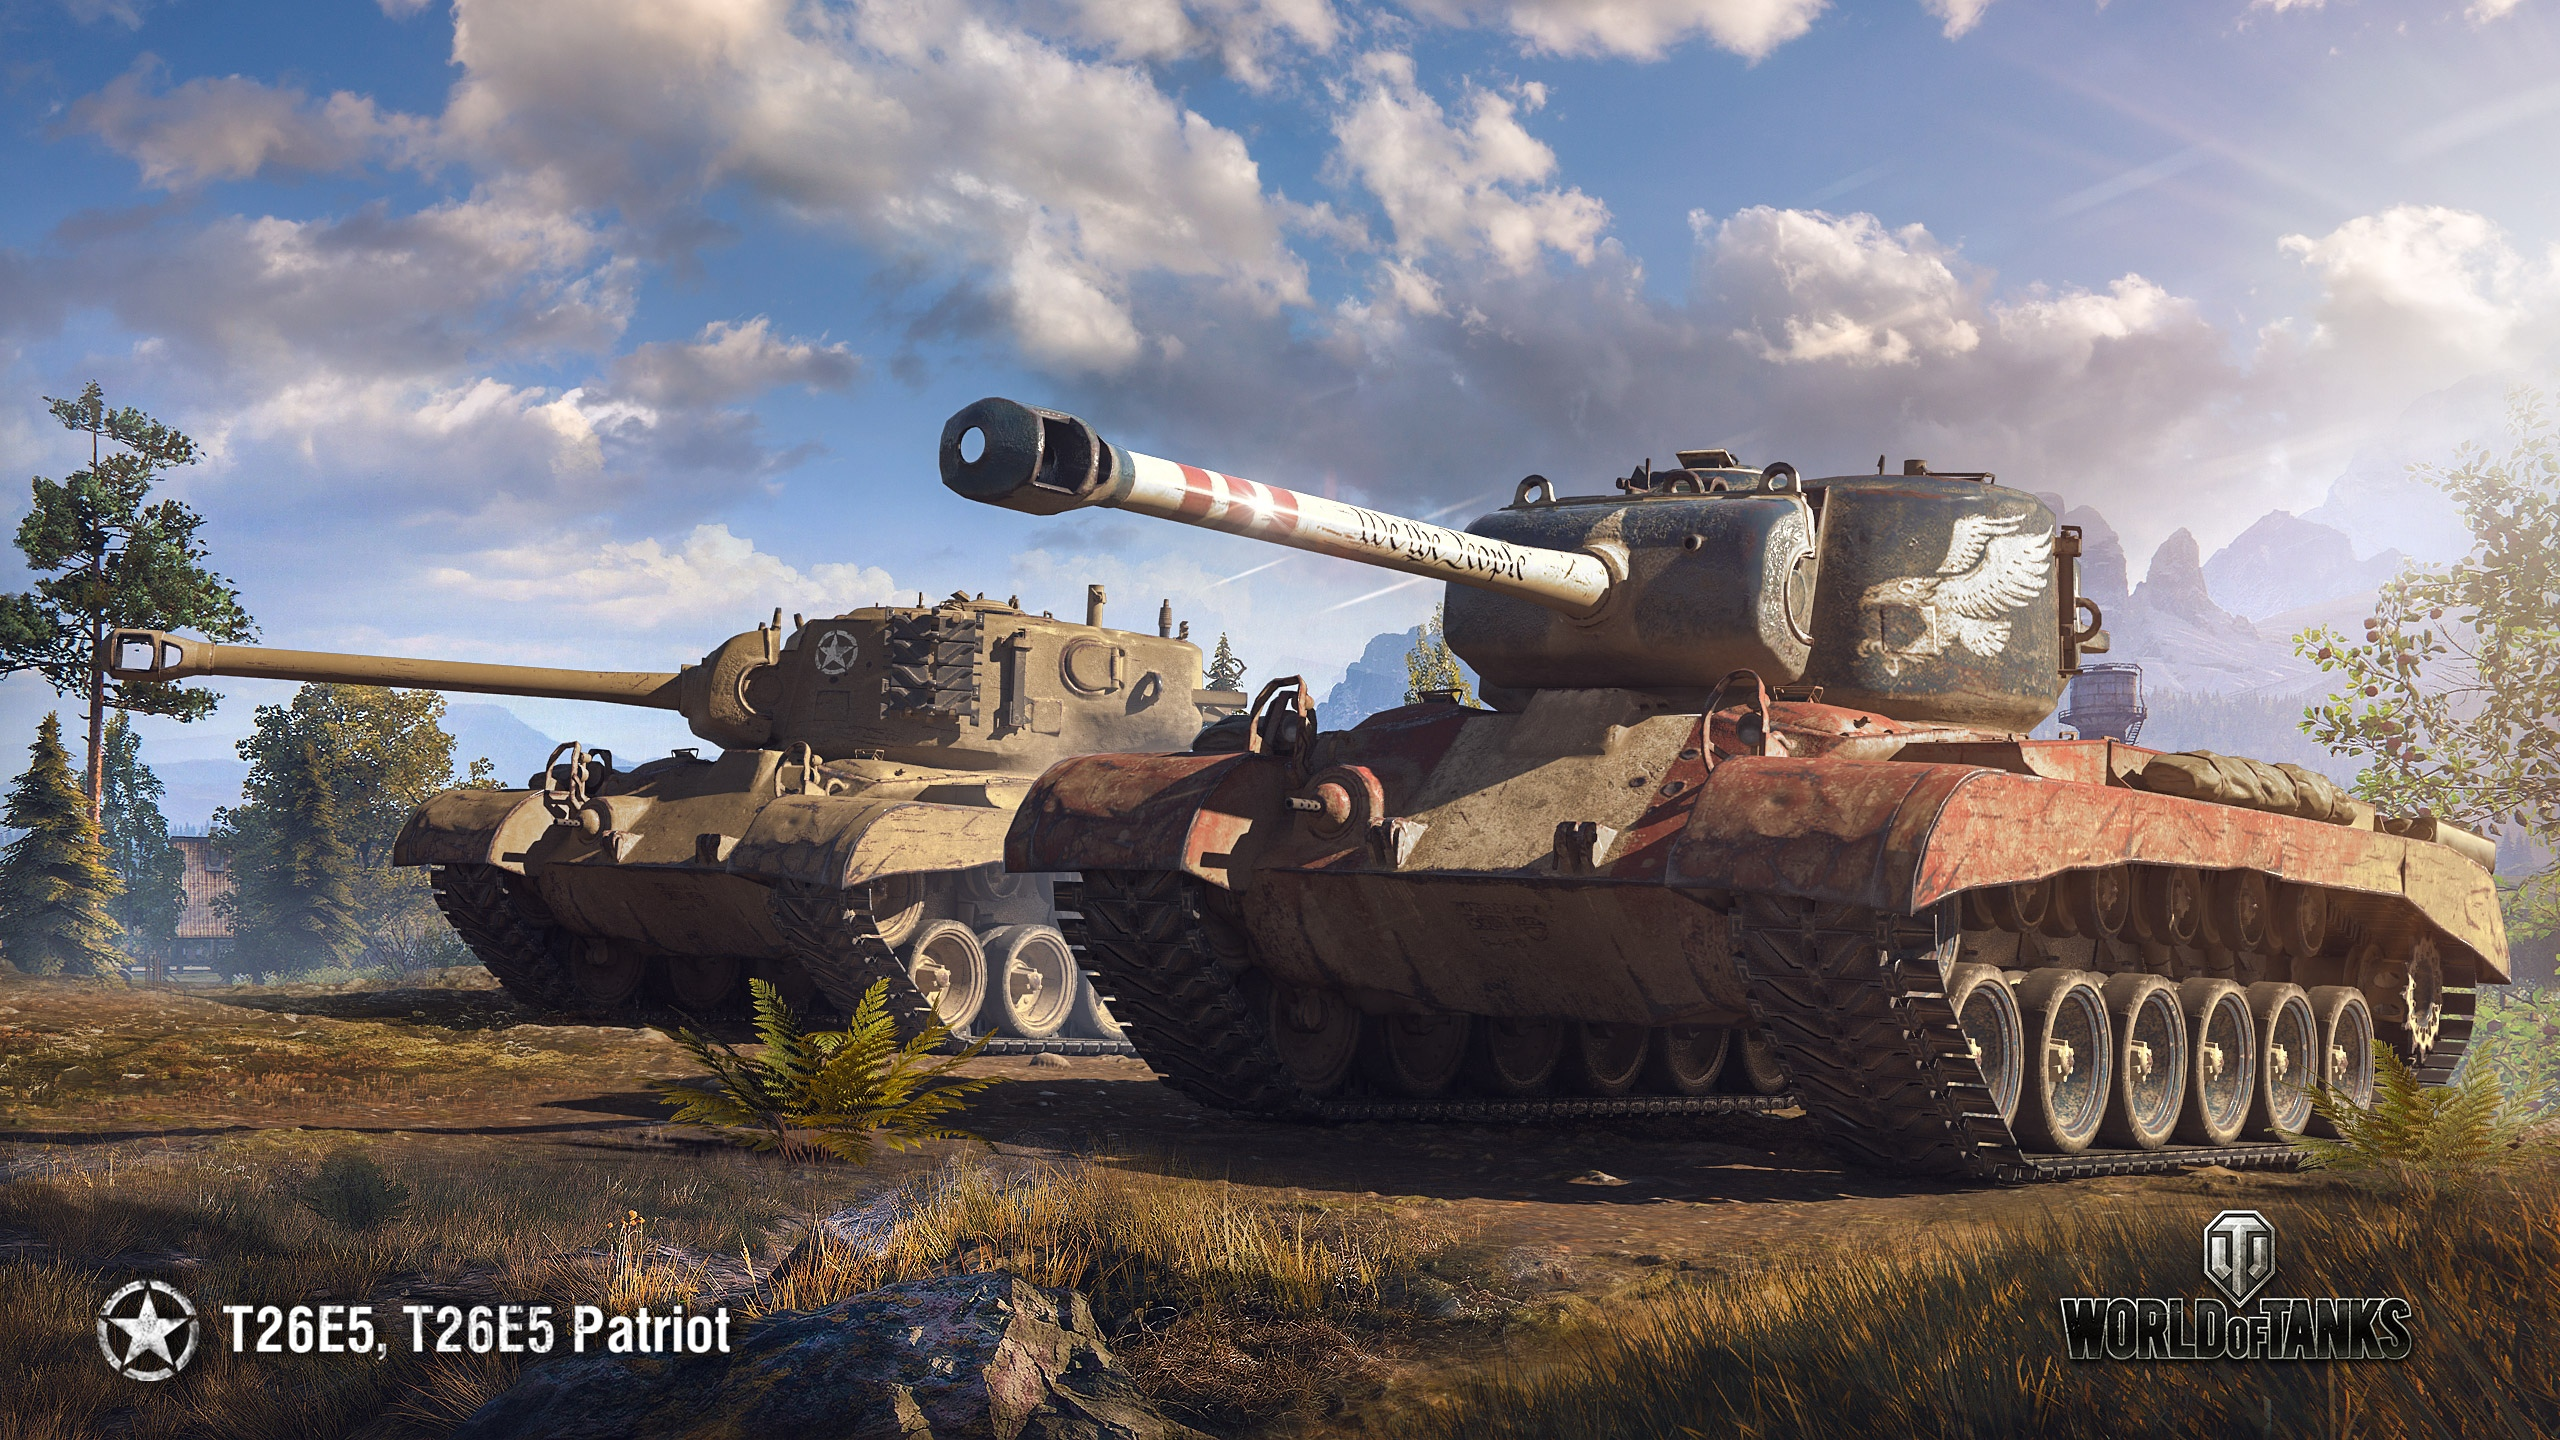 World Of Tanks Wallpaper T26e5 Patriot The Armored Patrol